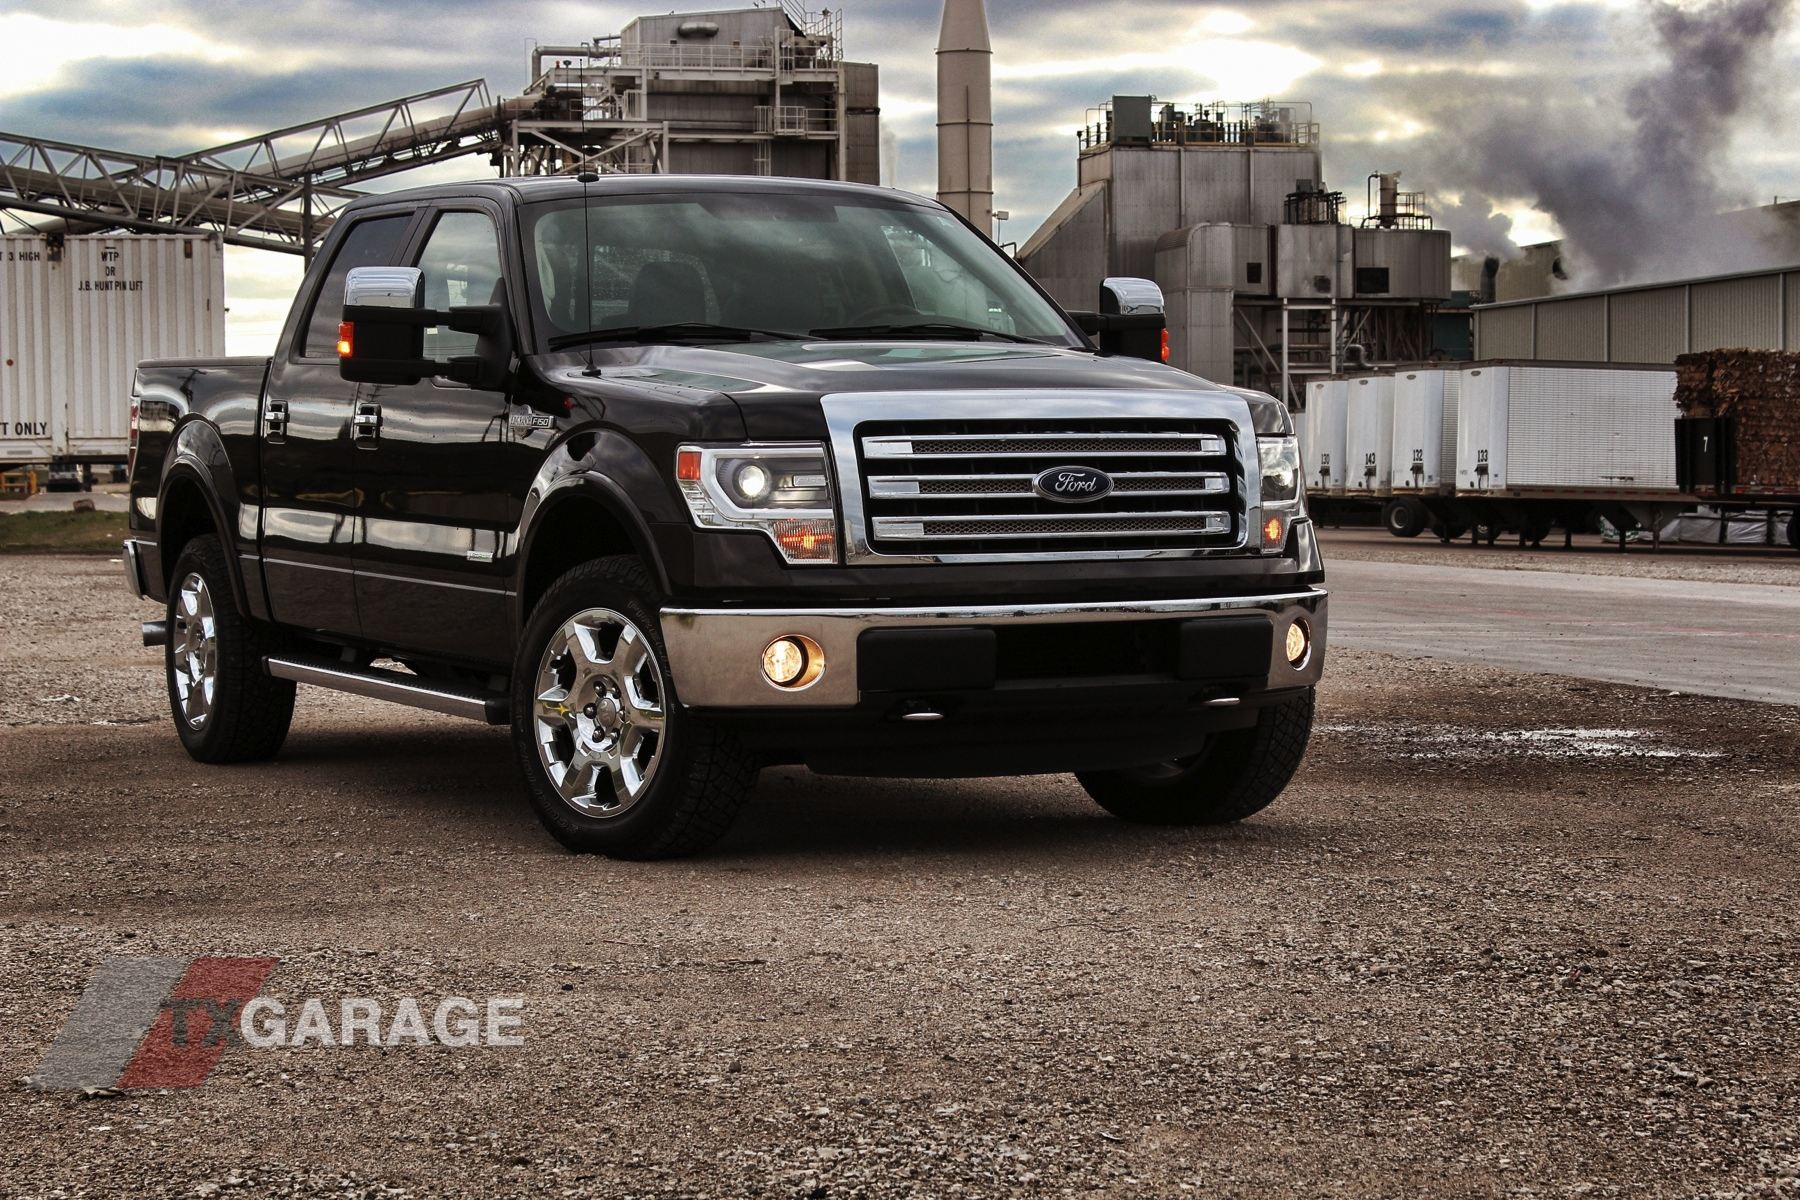 Full review of the 2013 ford f 150 king ranch ecoboost 4x4 txgarage